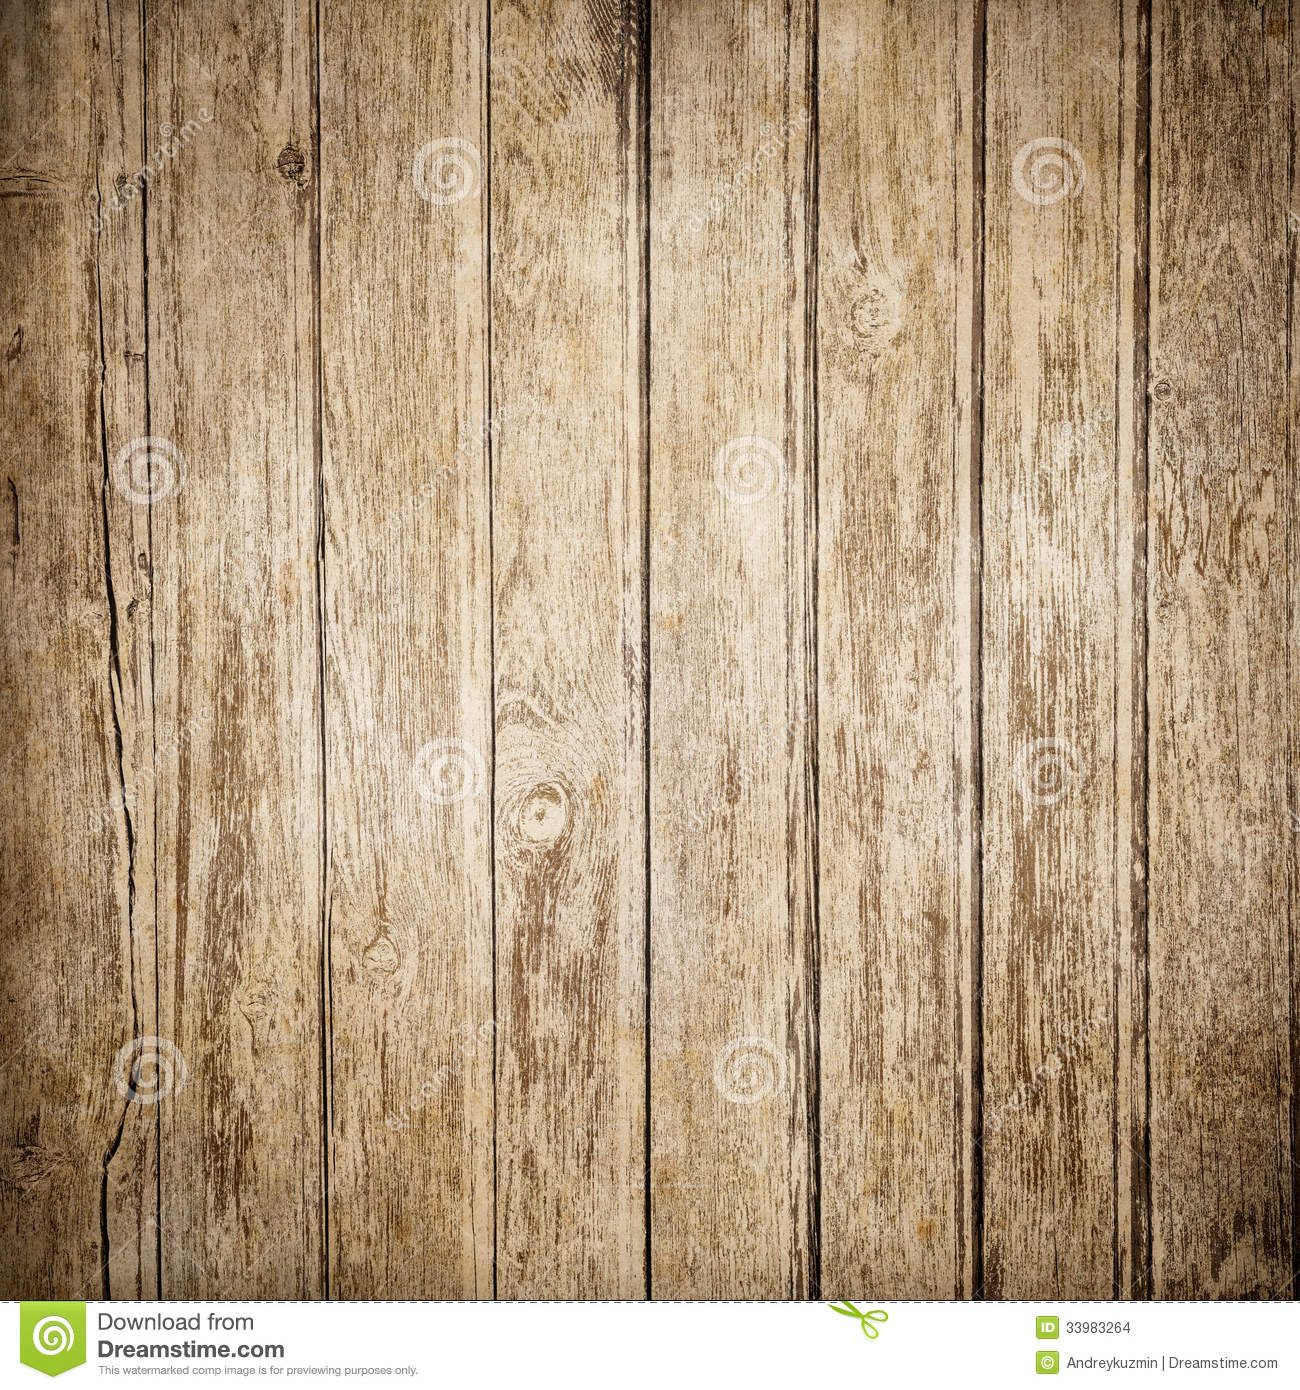 Grunge wood background